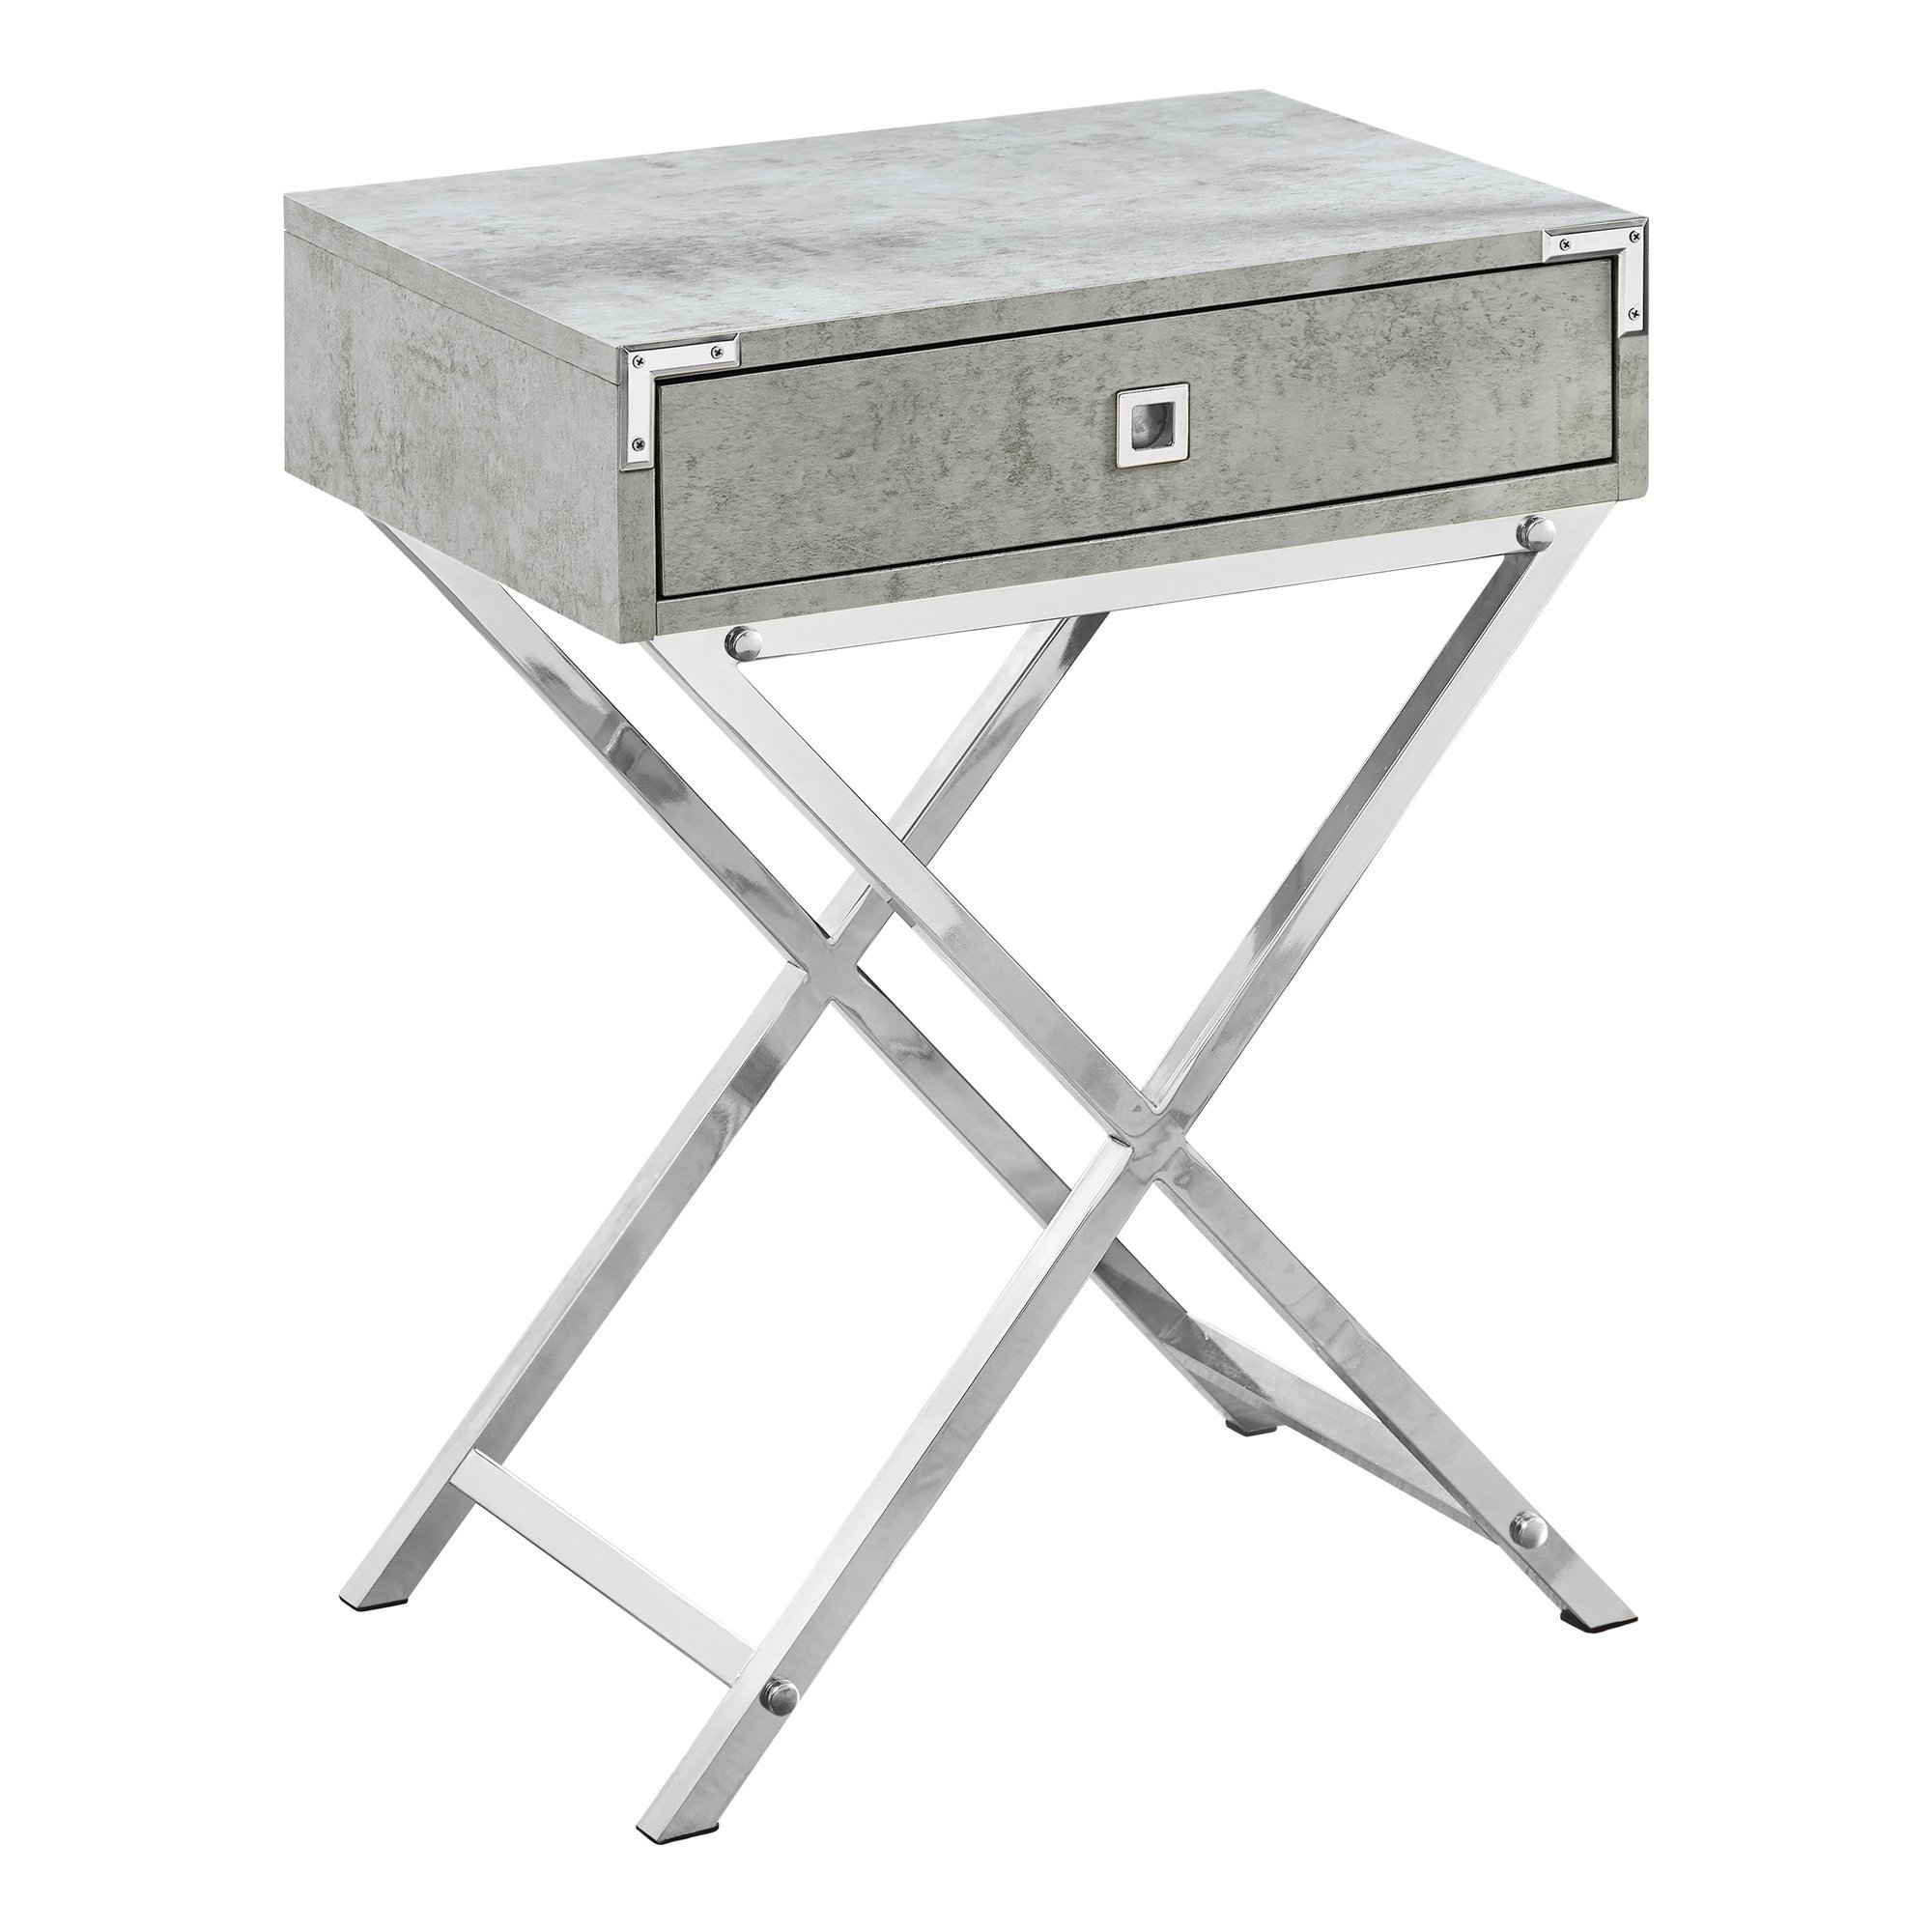 monarch mdf and metal accent table grey finish gwg with drawers red bedside patio umbrella outdoor glass side pedestal legs small round decorative chairs square marble dining